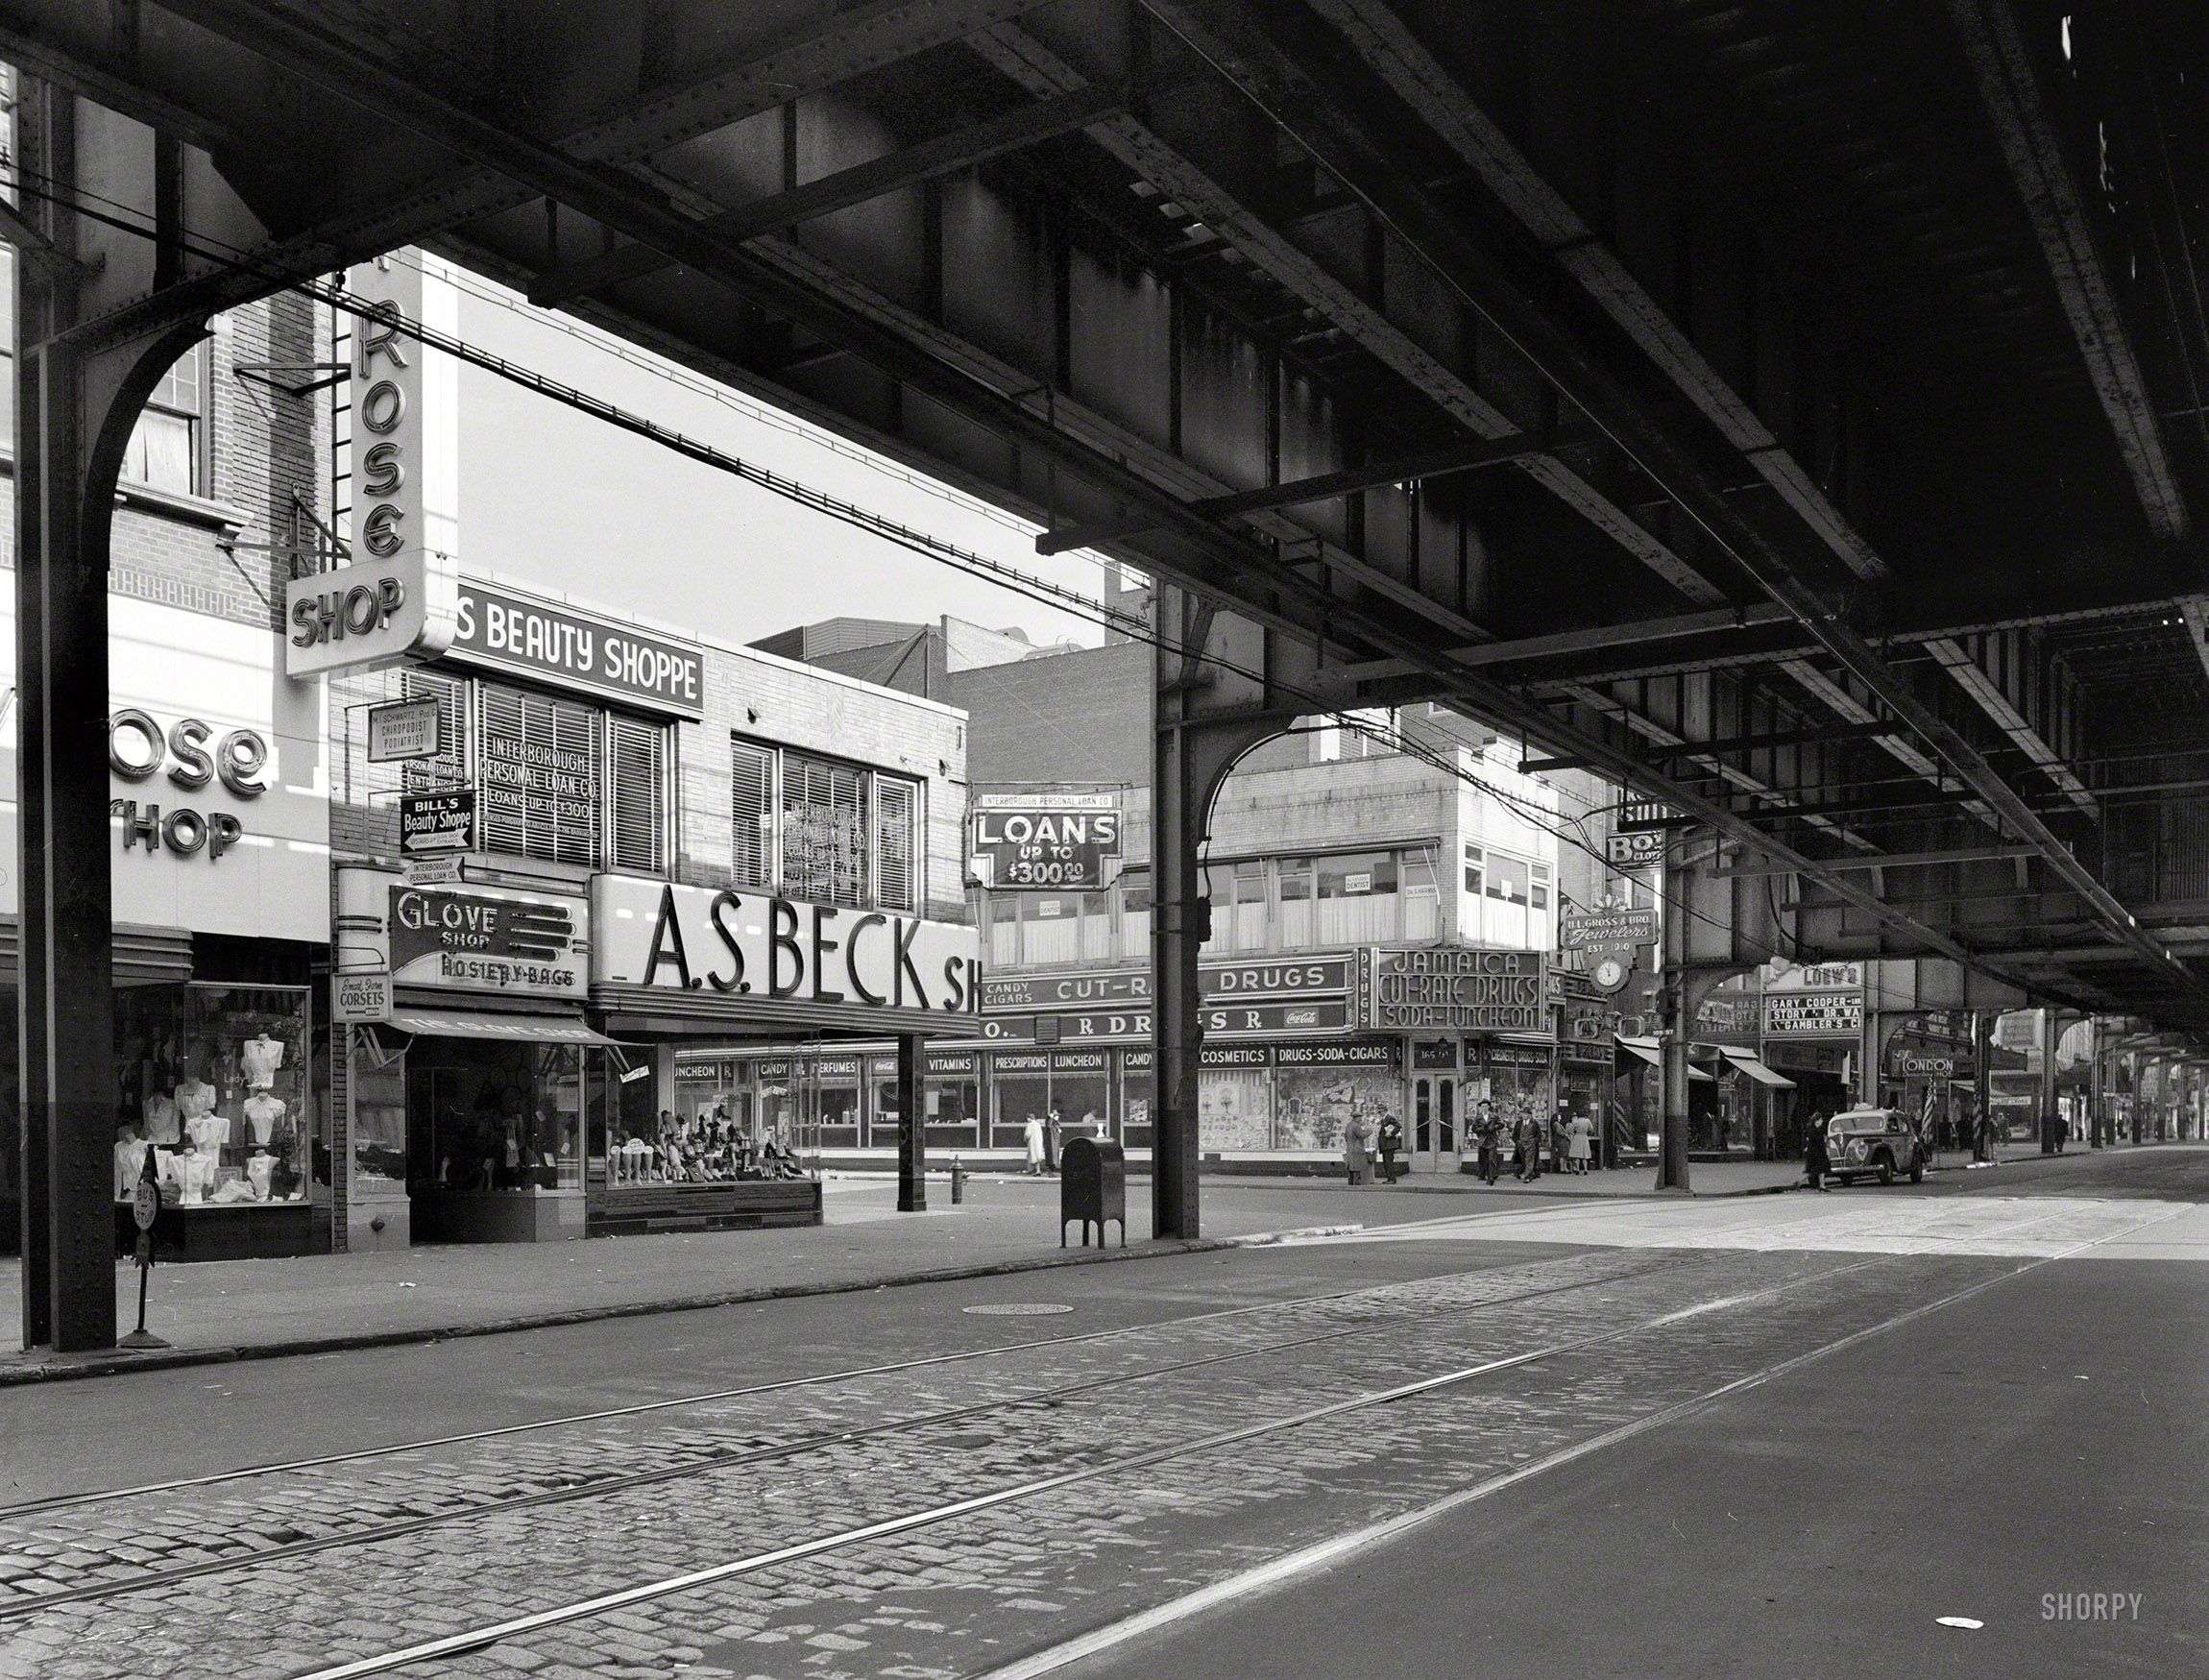 Jamaica Avenue at 165th Street in Queens on November 5, 1944. From under the